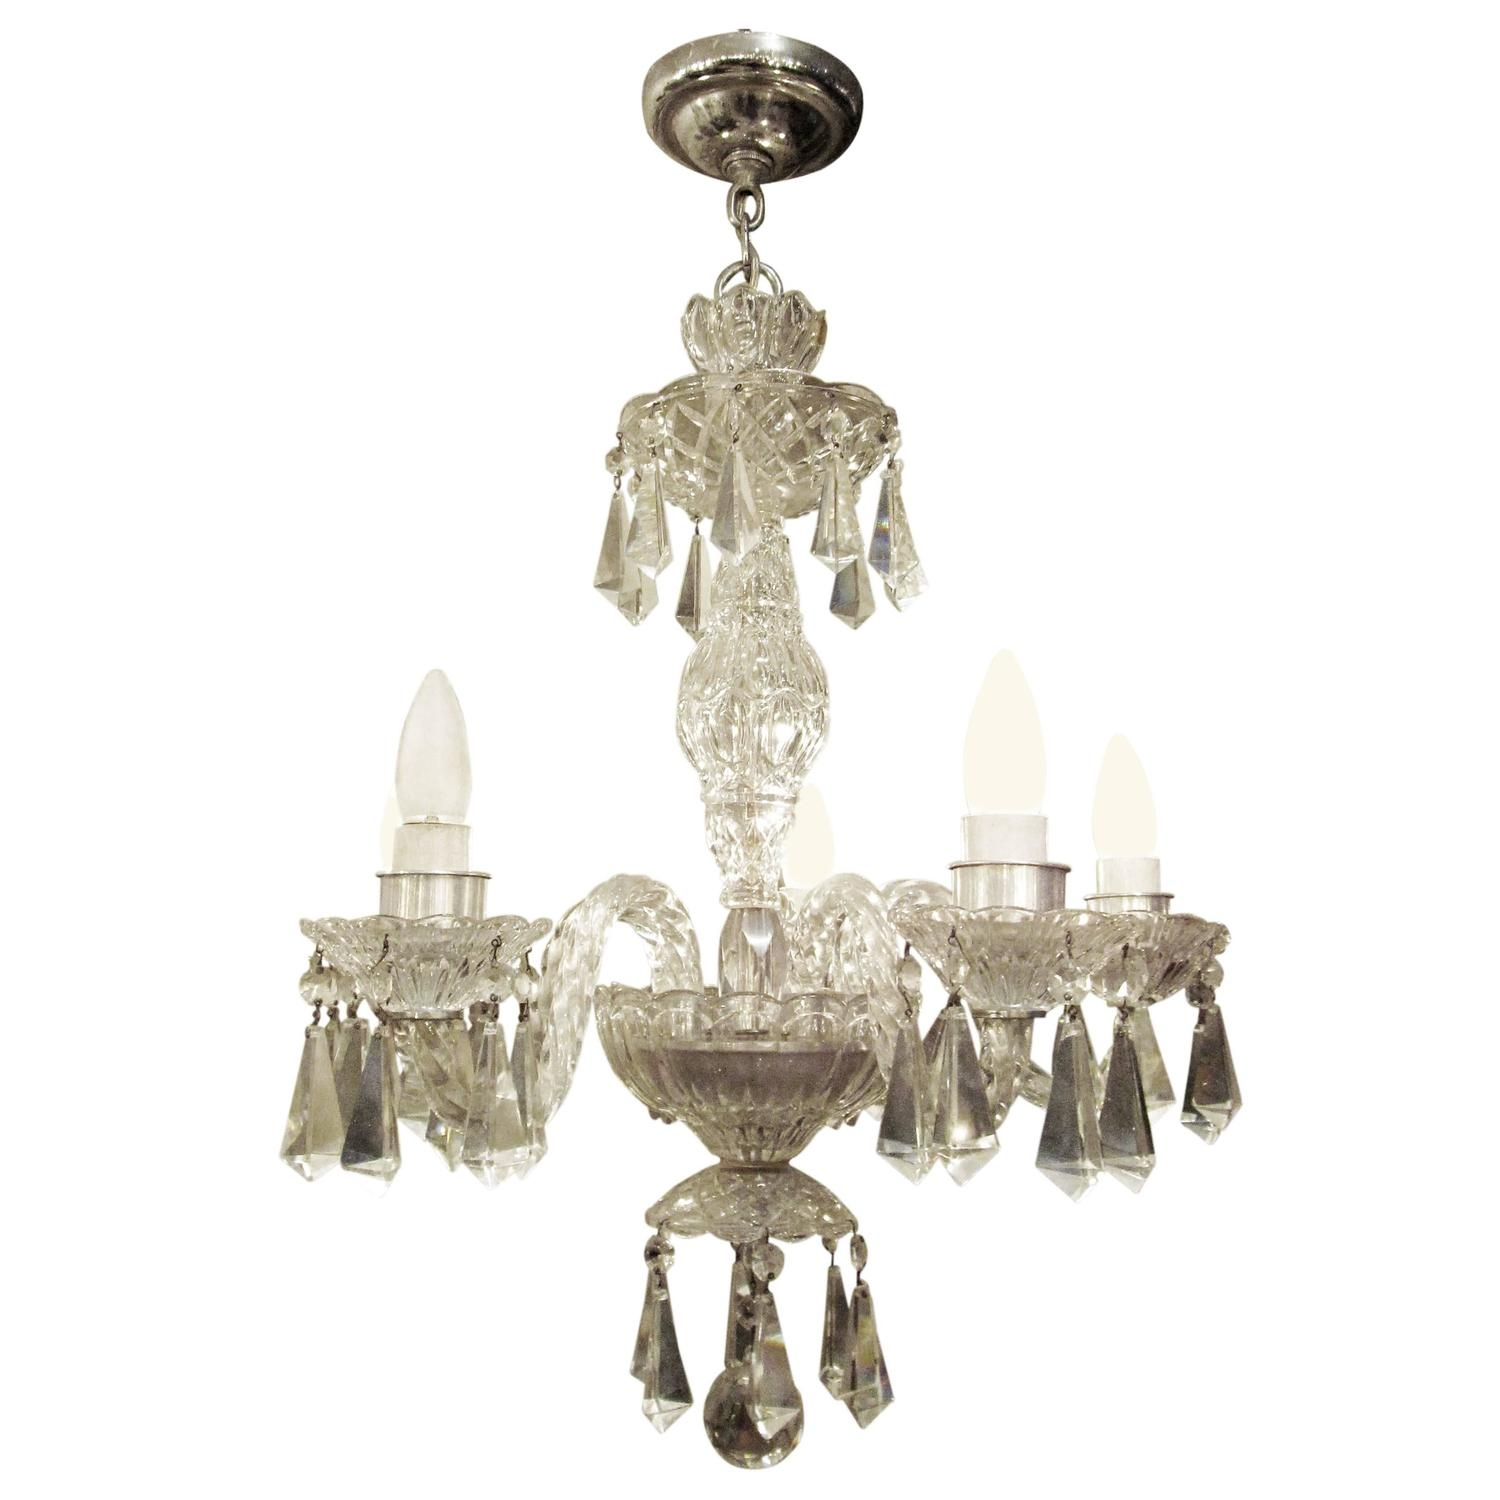 1940s Five Arm German Lead Crystal Chandelier Modern Chandelier Inside Lead Crystal Chandelier (Image 2 of 15)